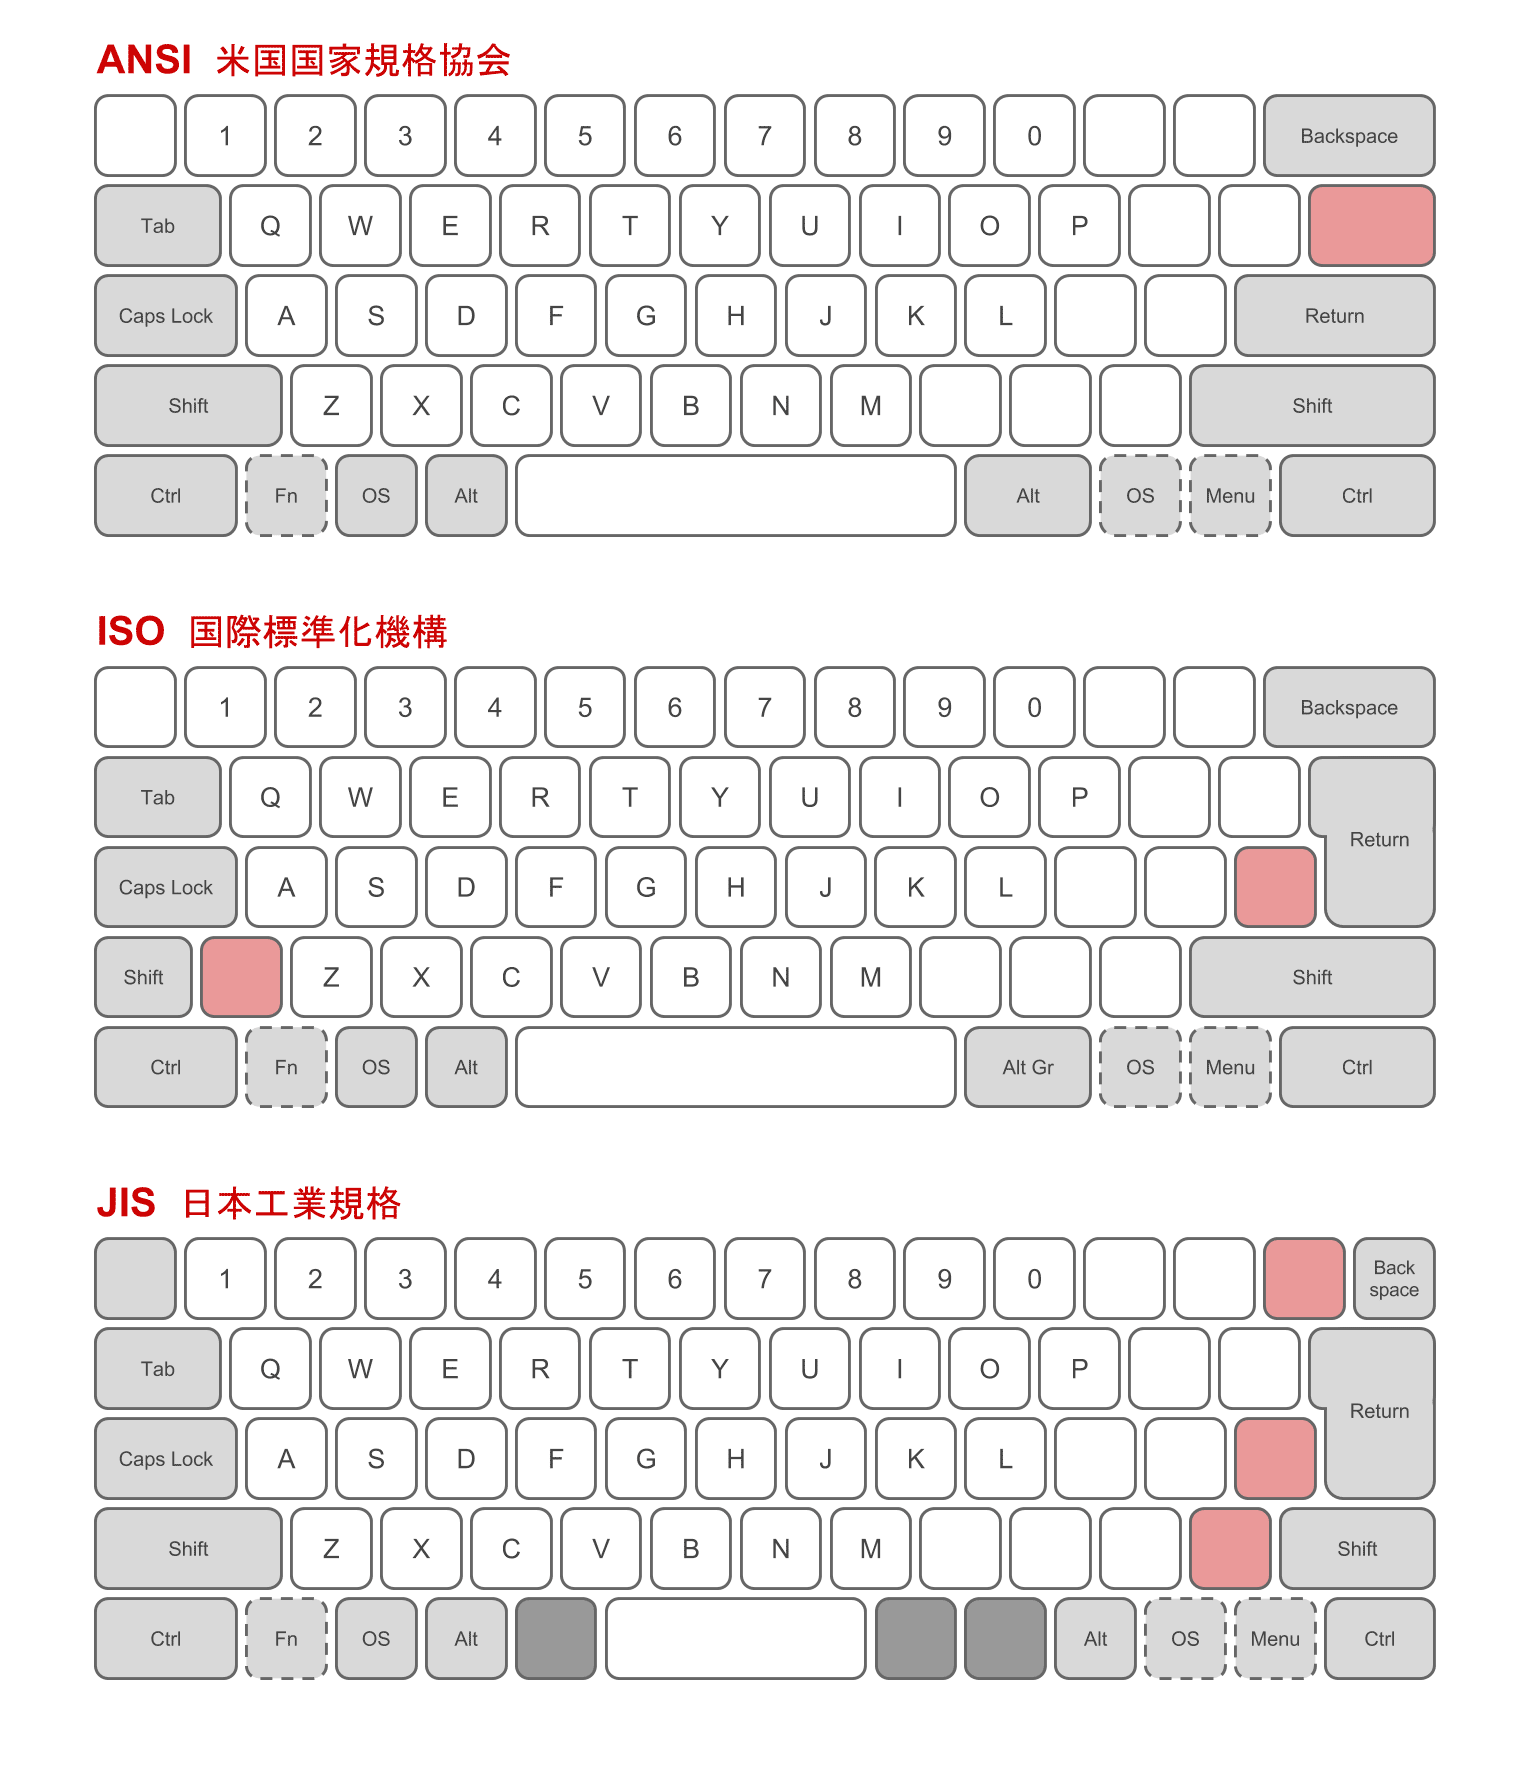 ファイル physical keyboard layouts comparison ansi iso jis png